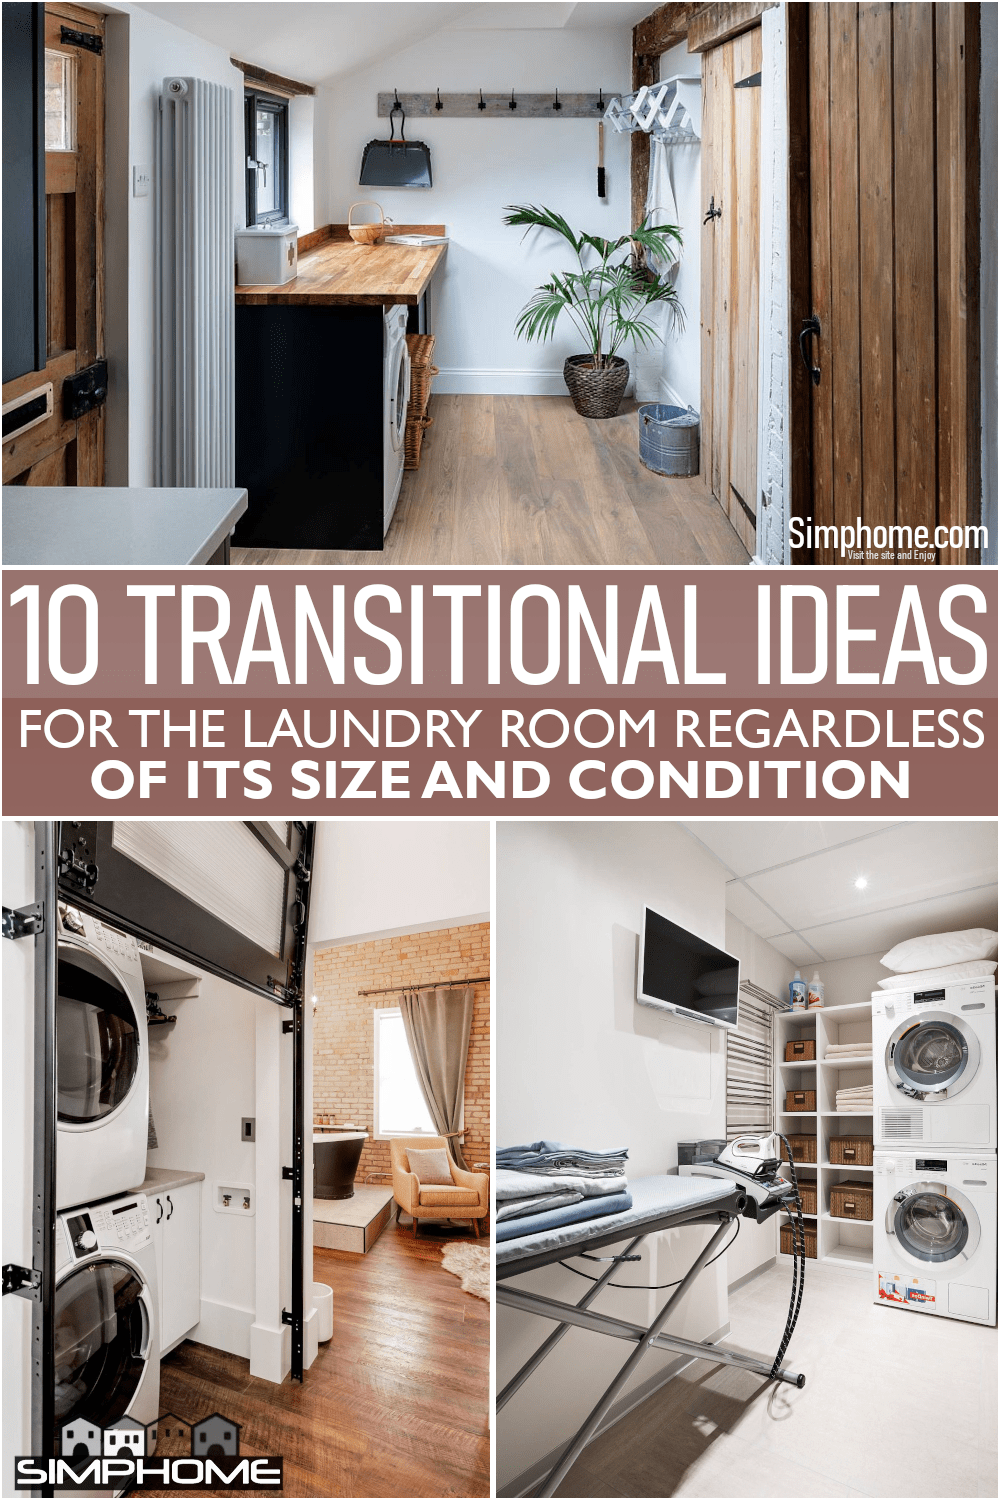 10 Transitional Laundry Room via Simphome.comFeatured